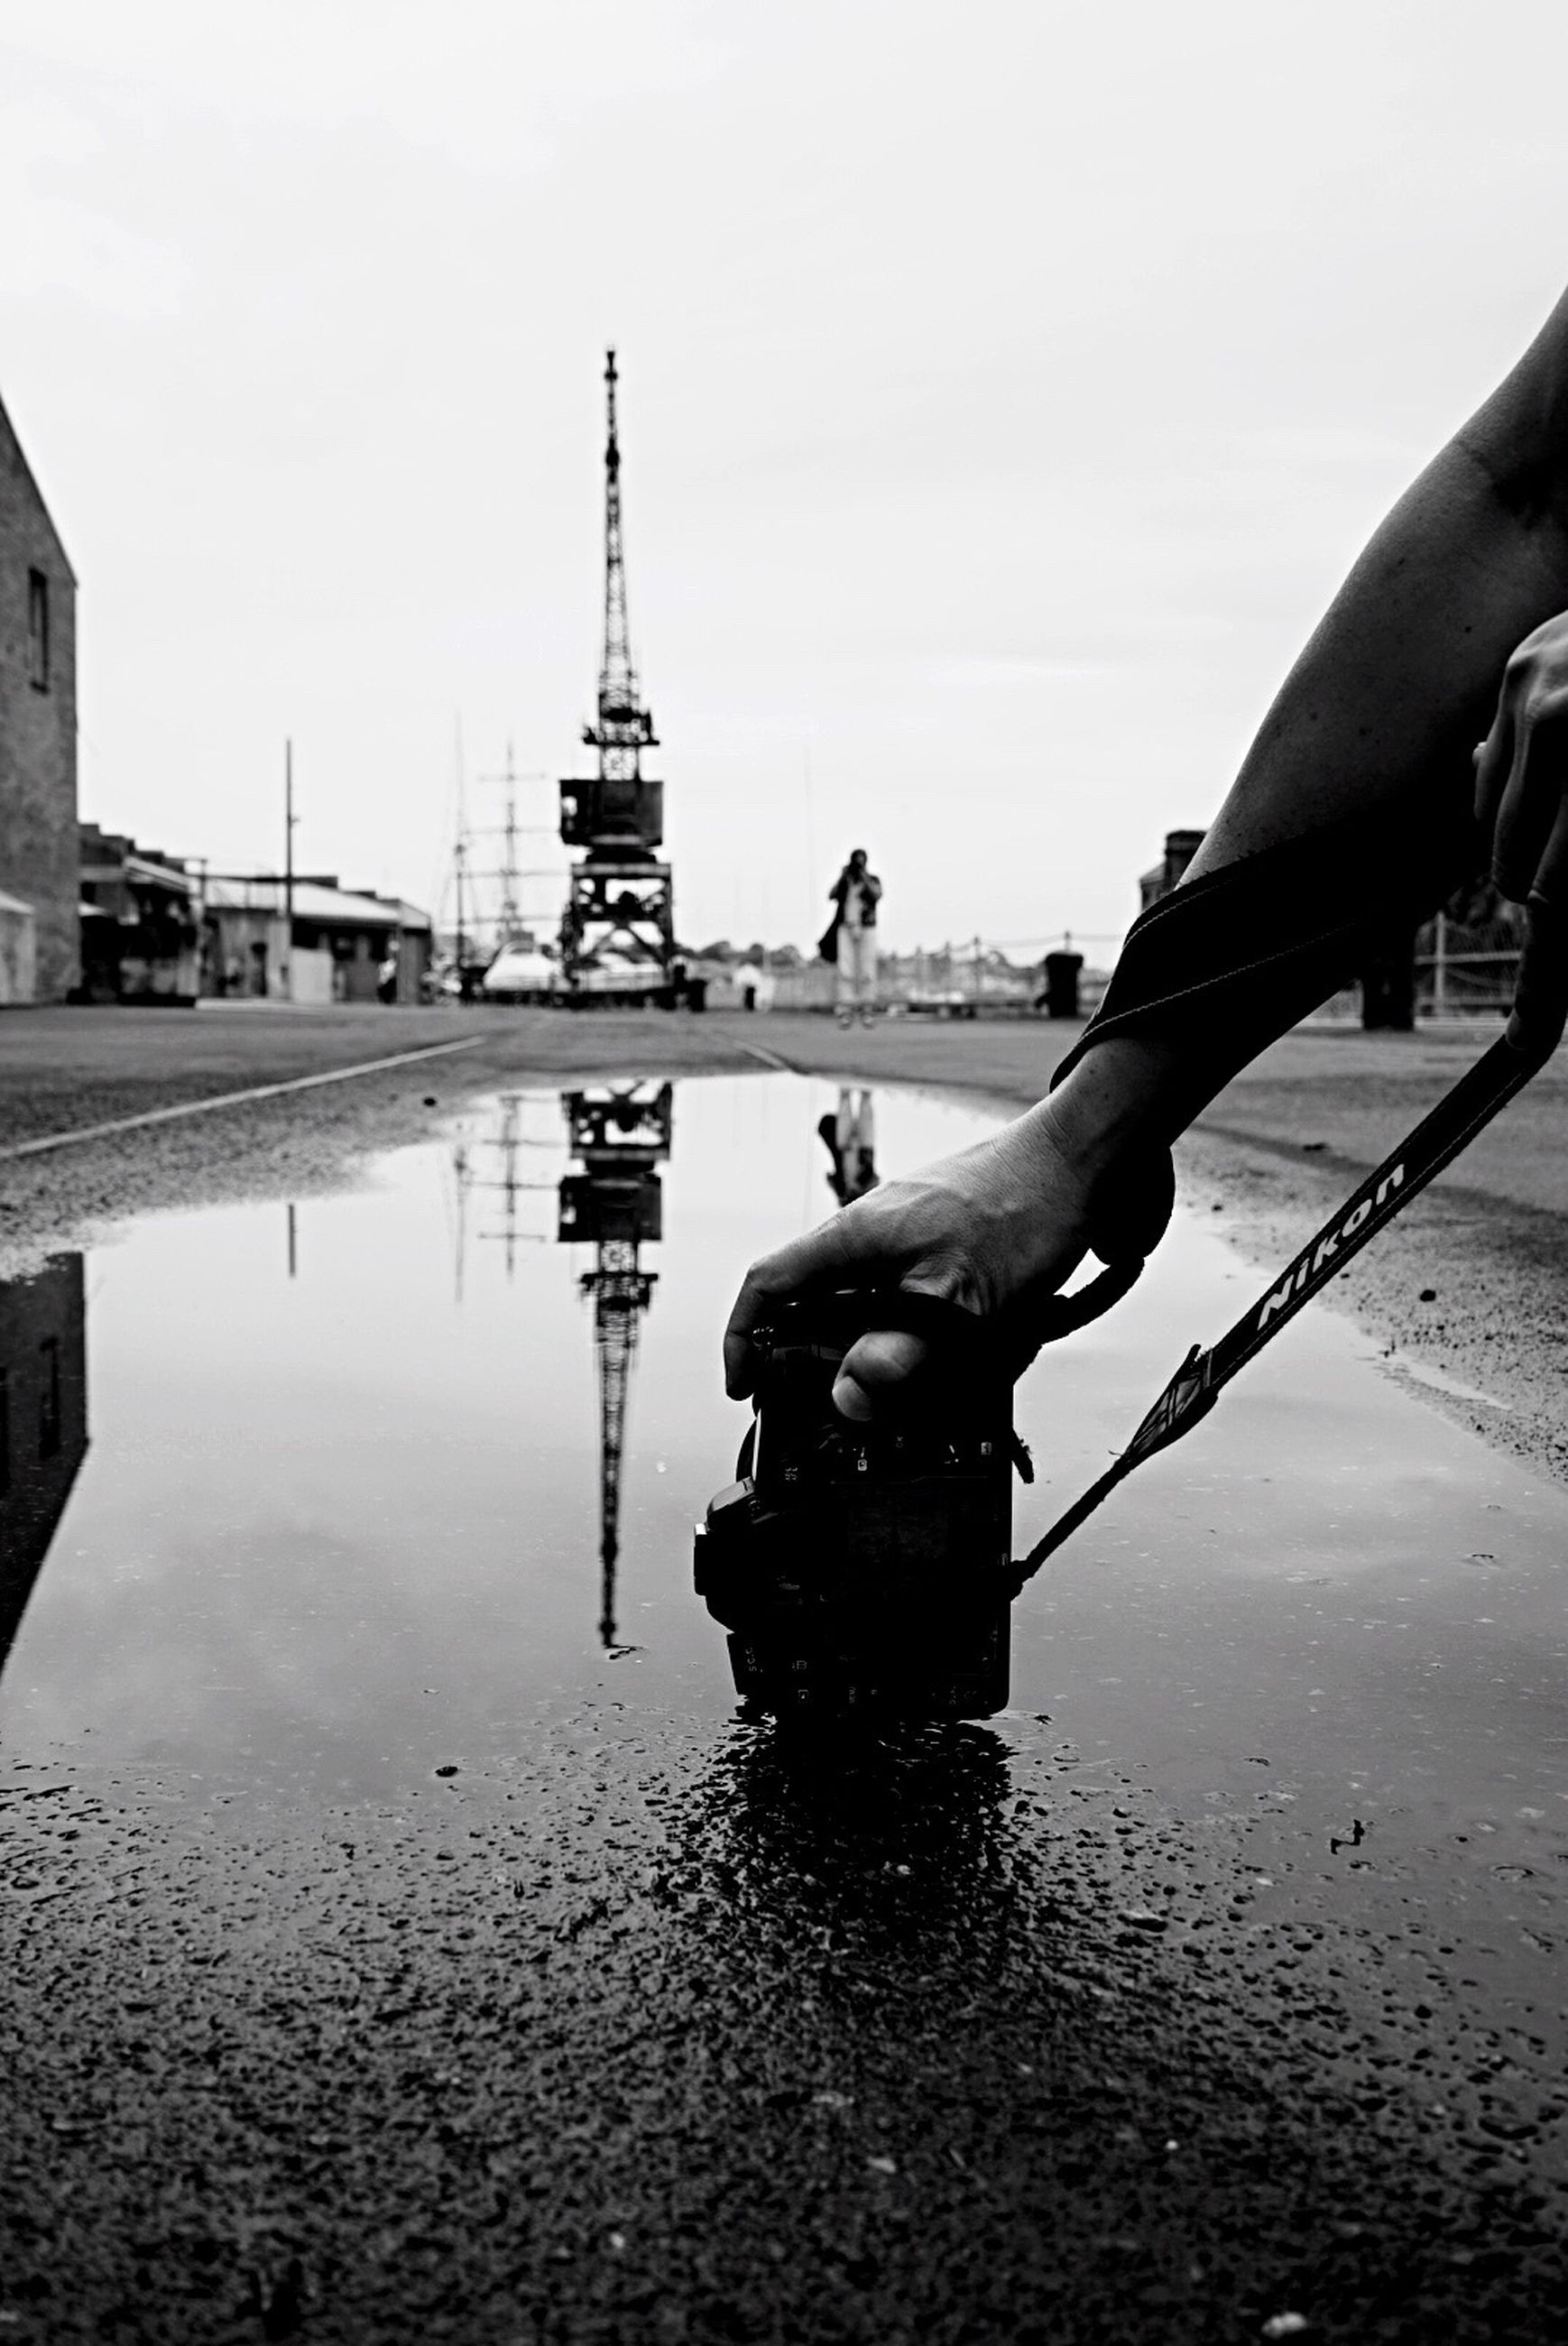 Cropped image of hand holding camera by puddle on street